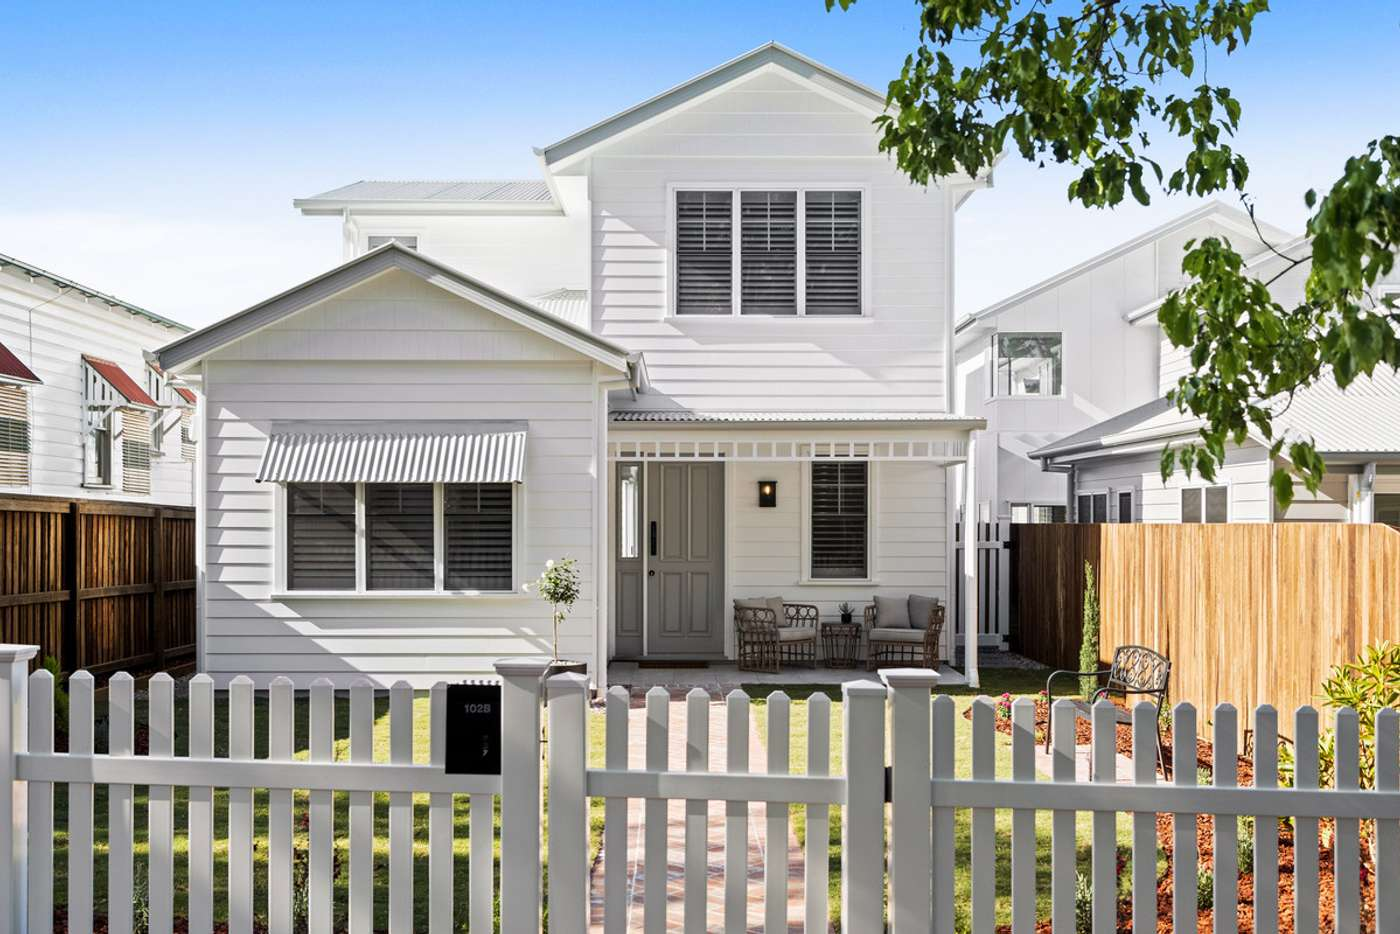 Main view of Homely house listing, 102b Campbell Street, East Toowoomba QLD 4350